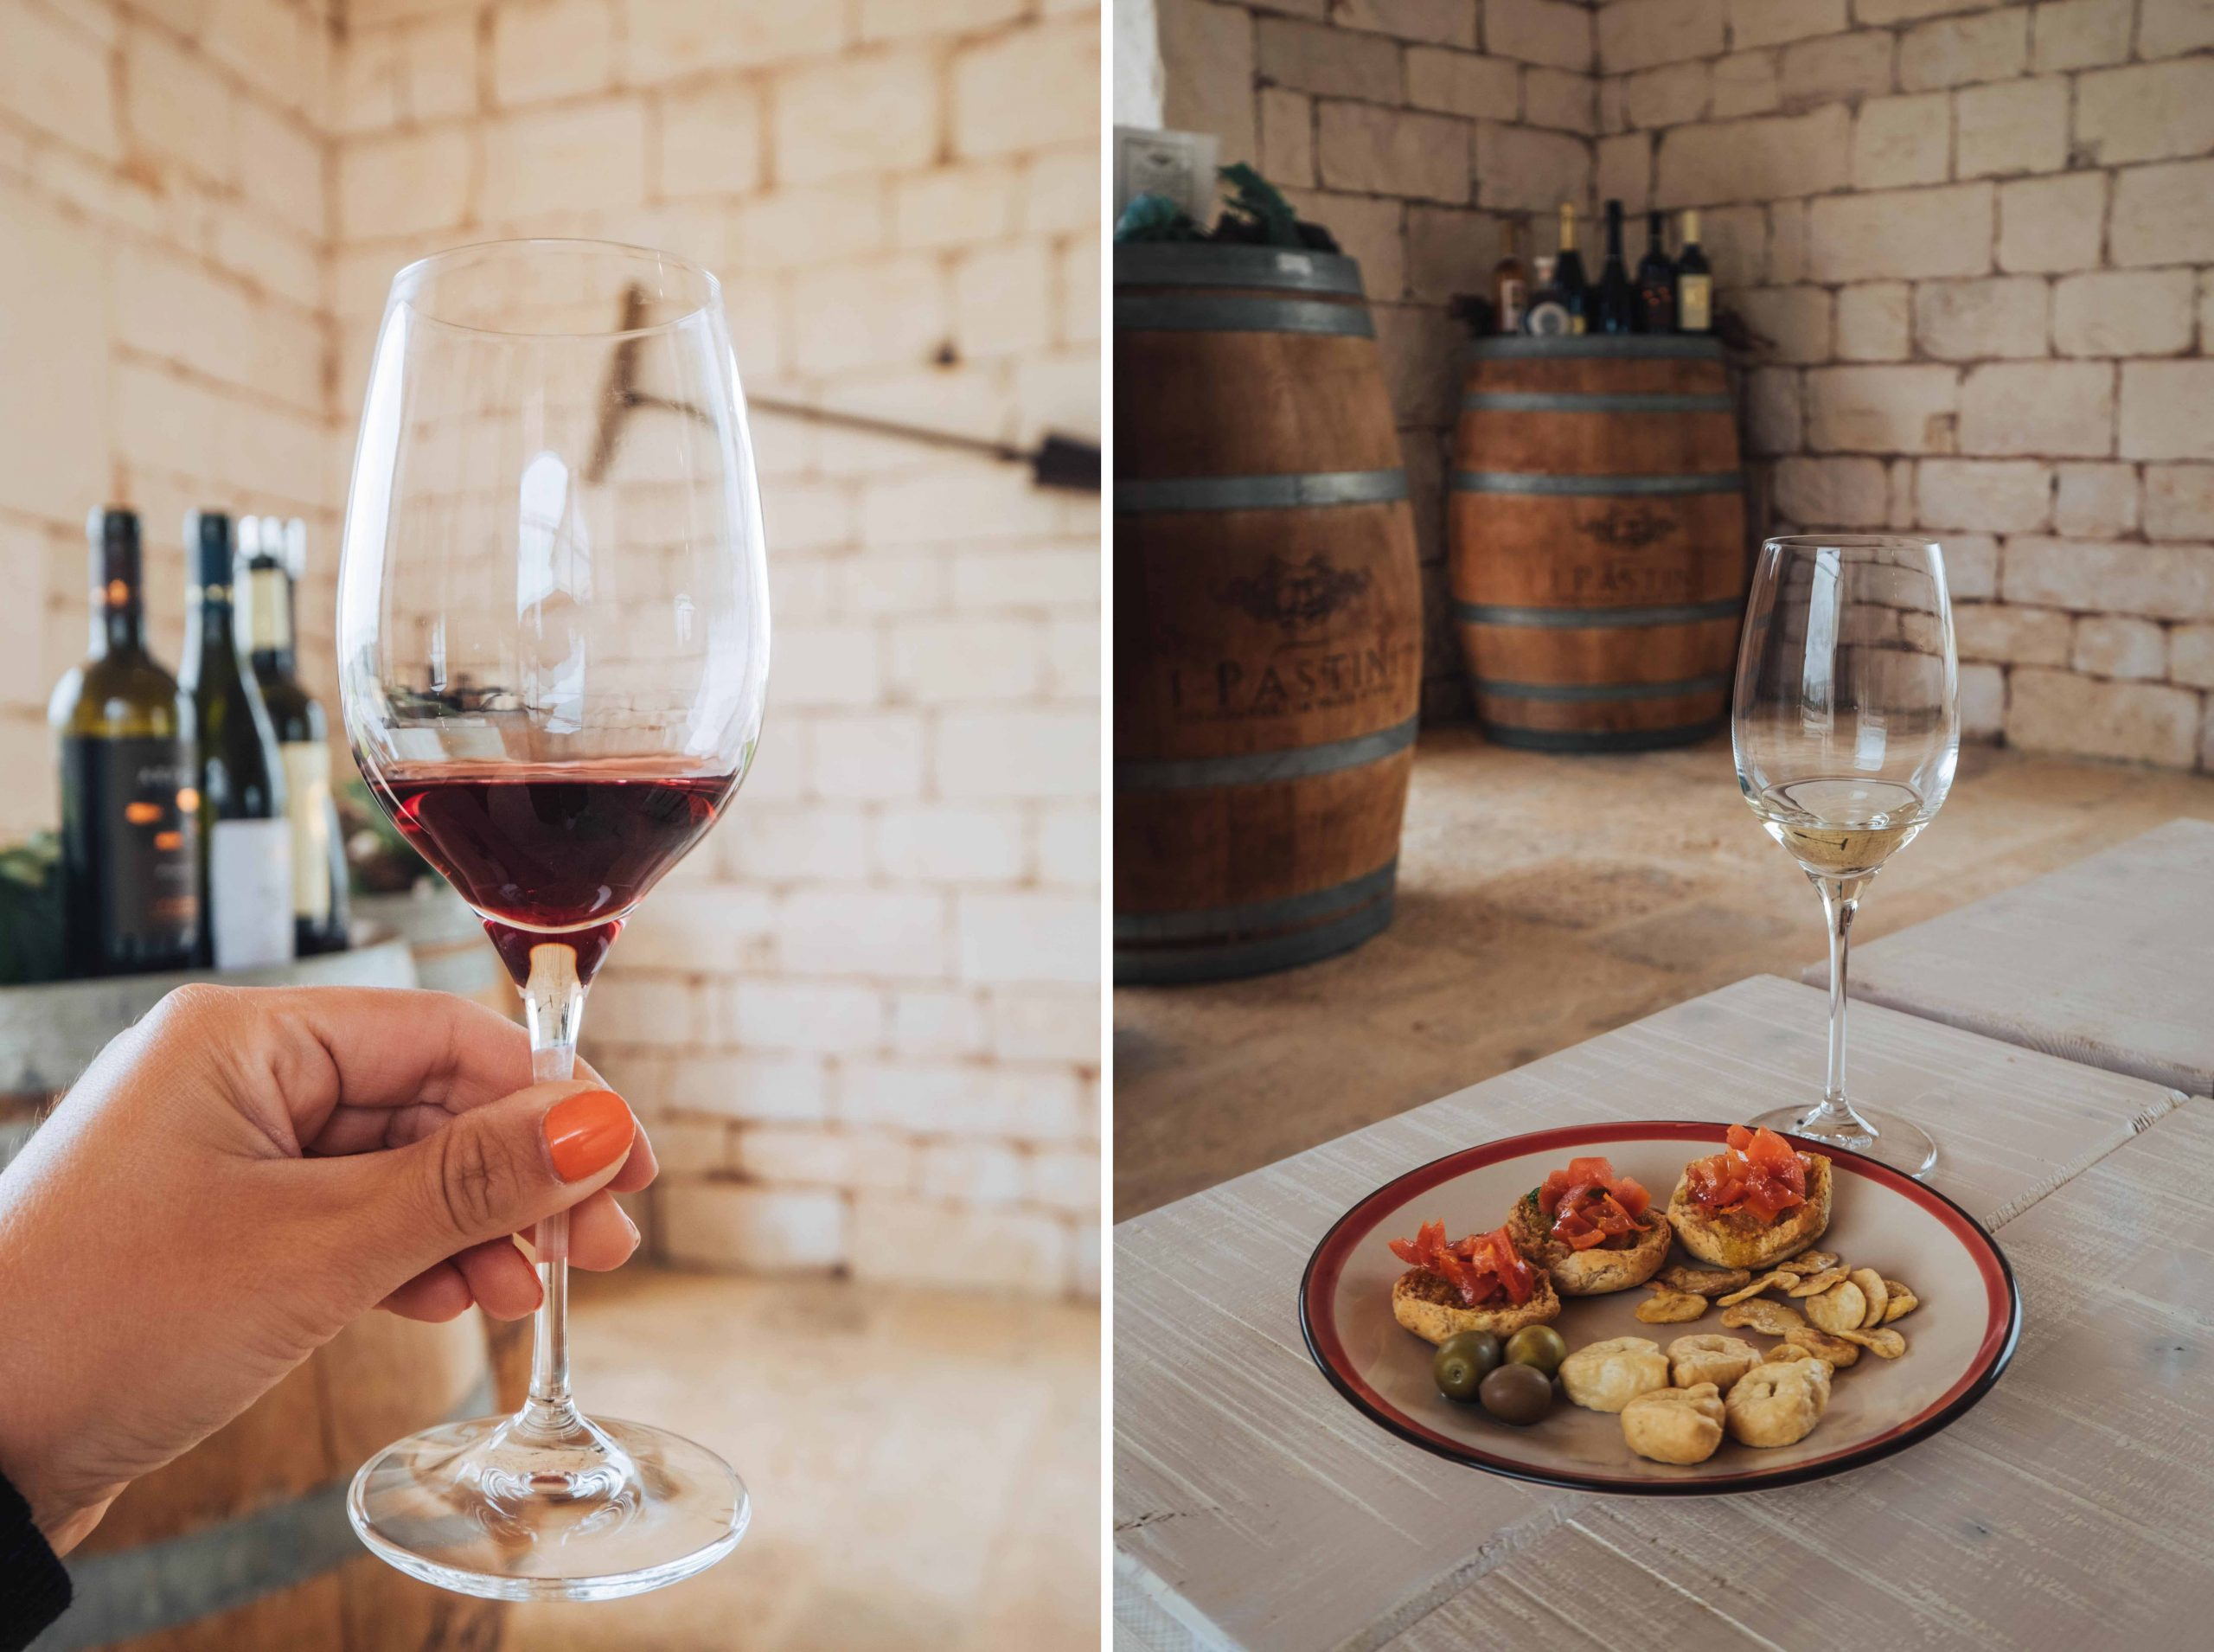 Wine tasting and winery tour at Cantina i Pastini in Valle d'Itria | A 7-day Road Trip Through Puglia | Mondomulia